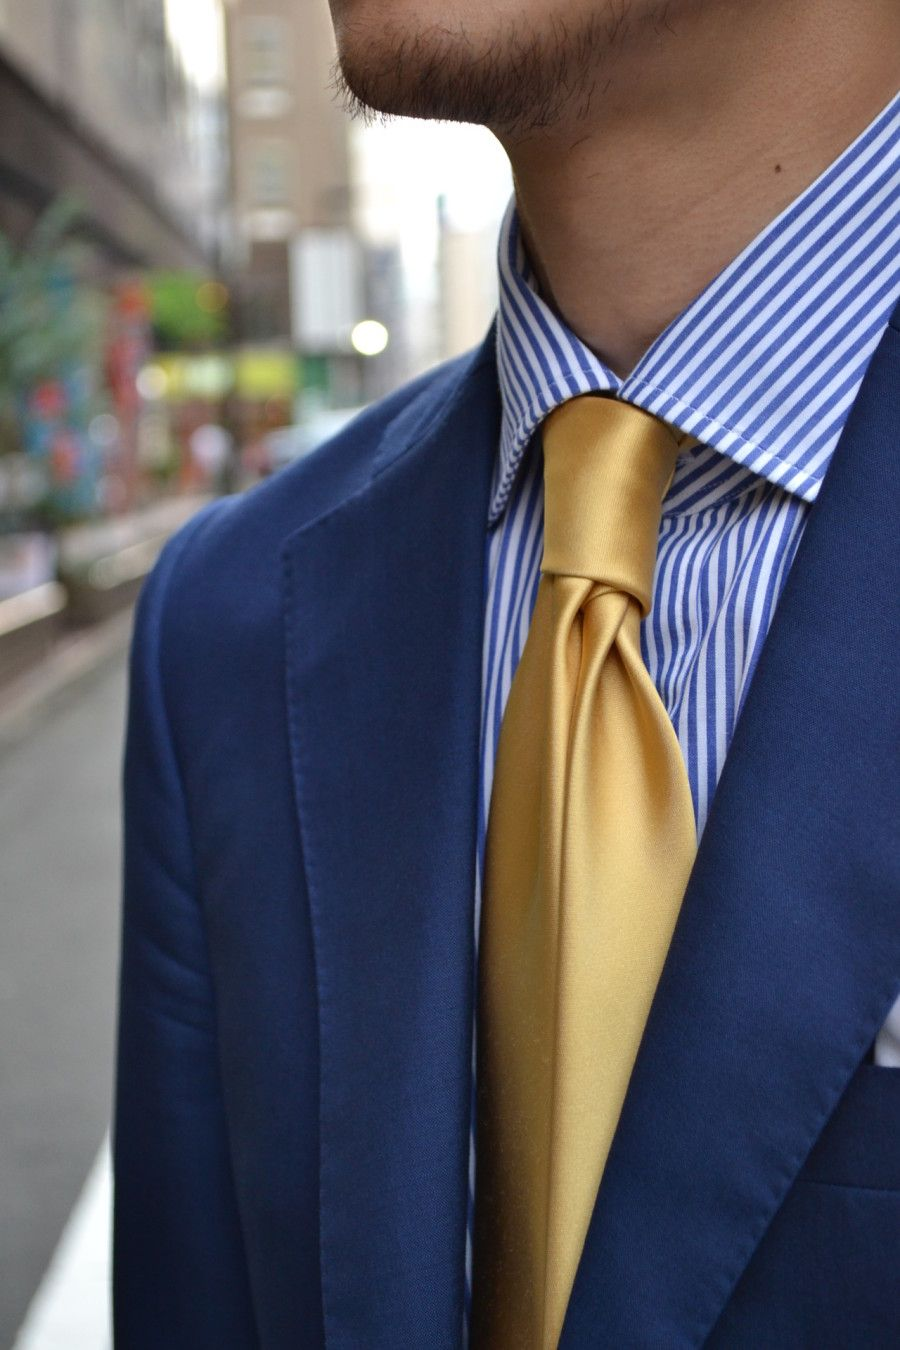 Gold Ties | Ties Ties Ties!!! We Love 'Em! | Pinterest | Blue ...